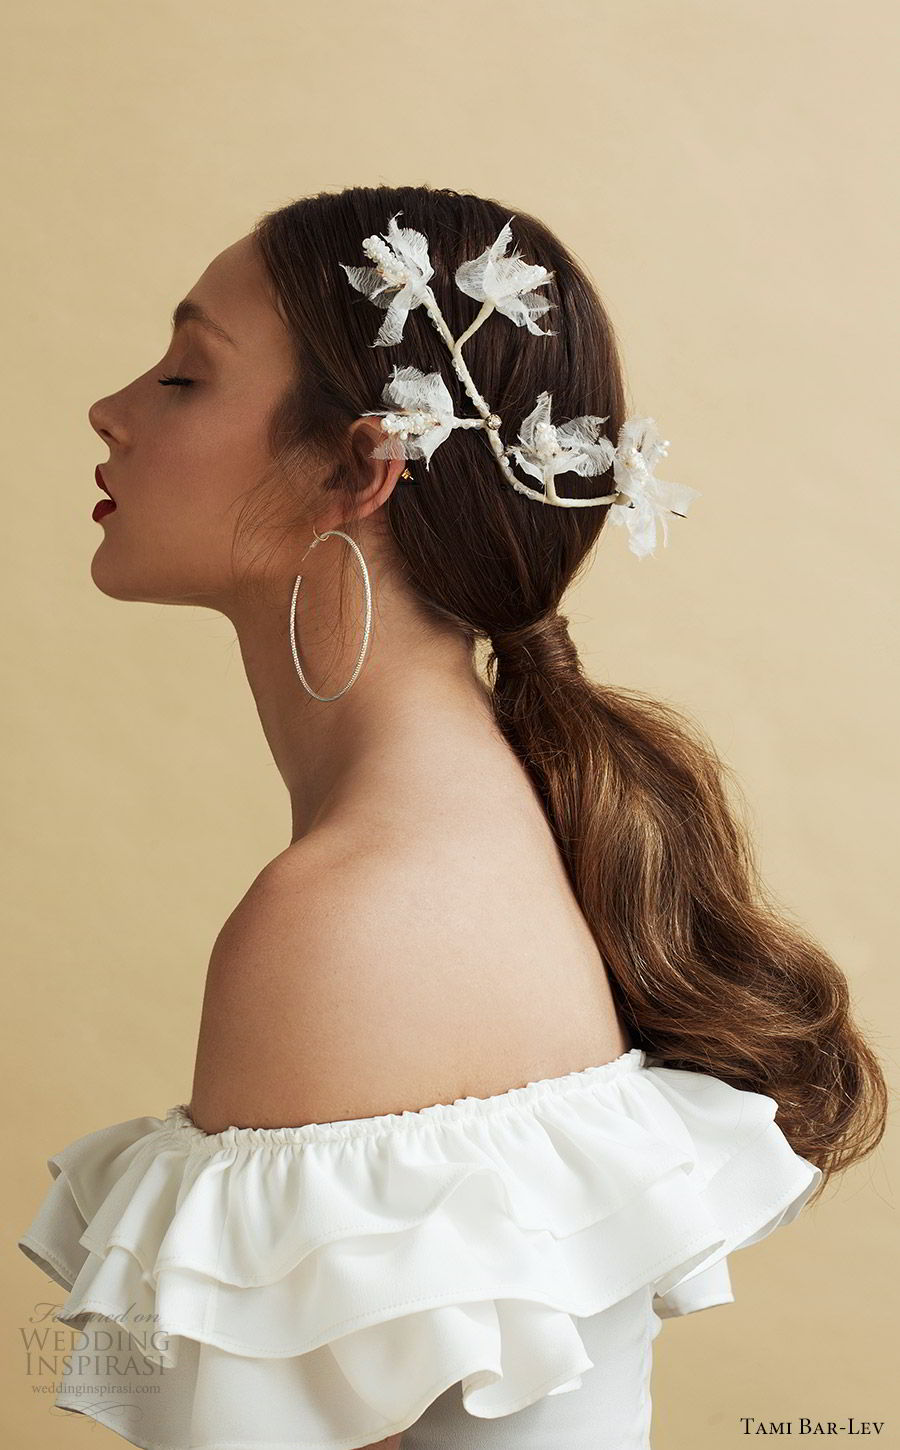 tami bar lev headpiece 2019 bridal hair accessories flirty flowers back piece hair accessory